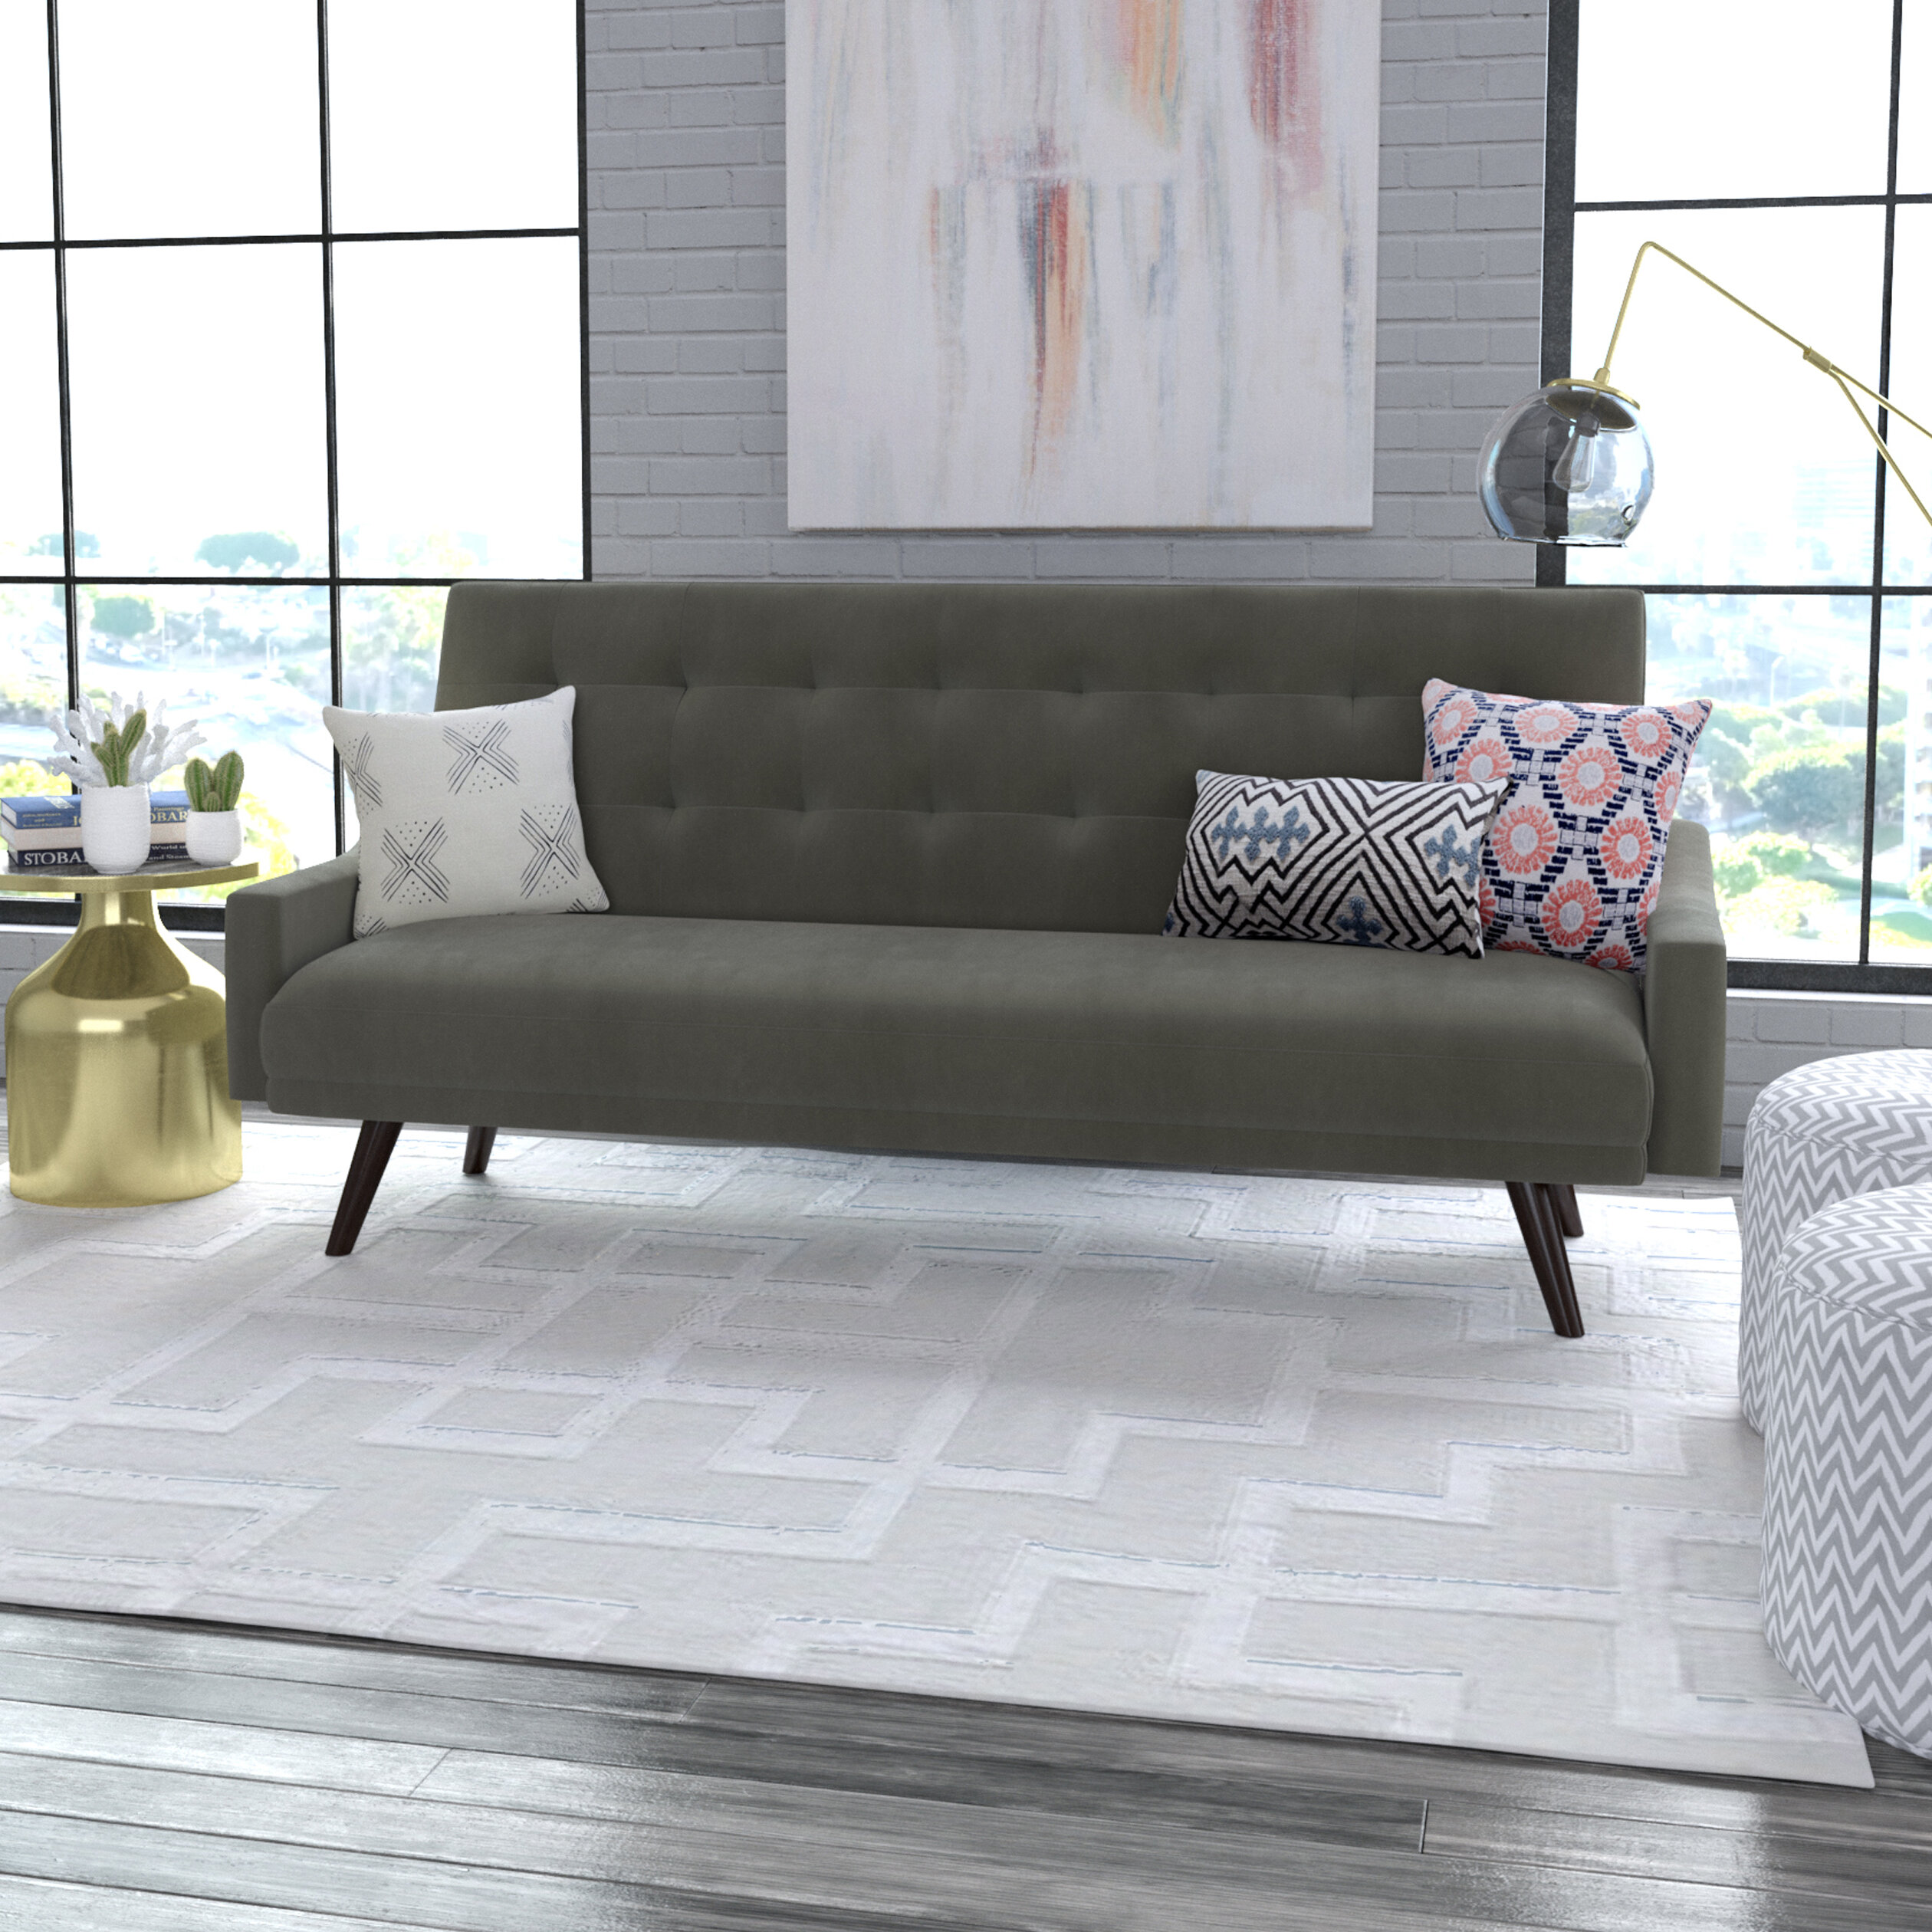 creme sleepers sofa trundle up out crevere pull with style clack sofas couch dempsey futon livingroom novak furniture pop click daybed